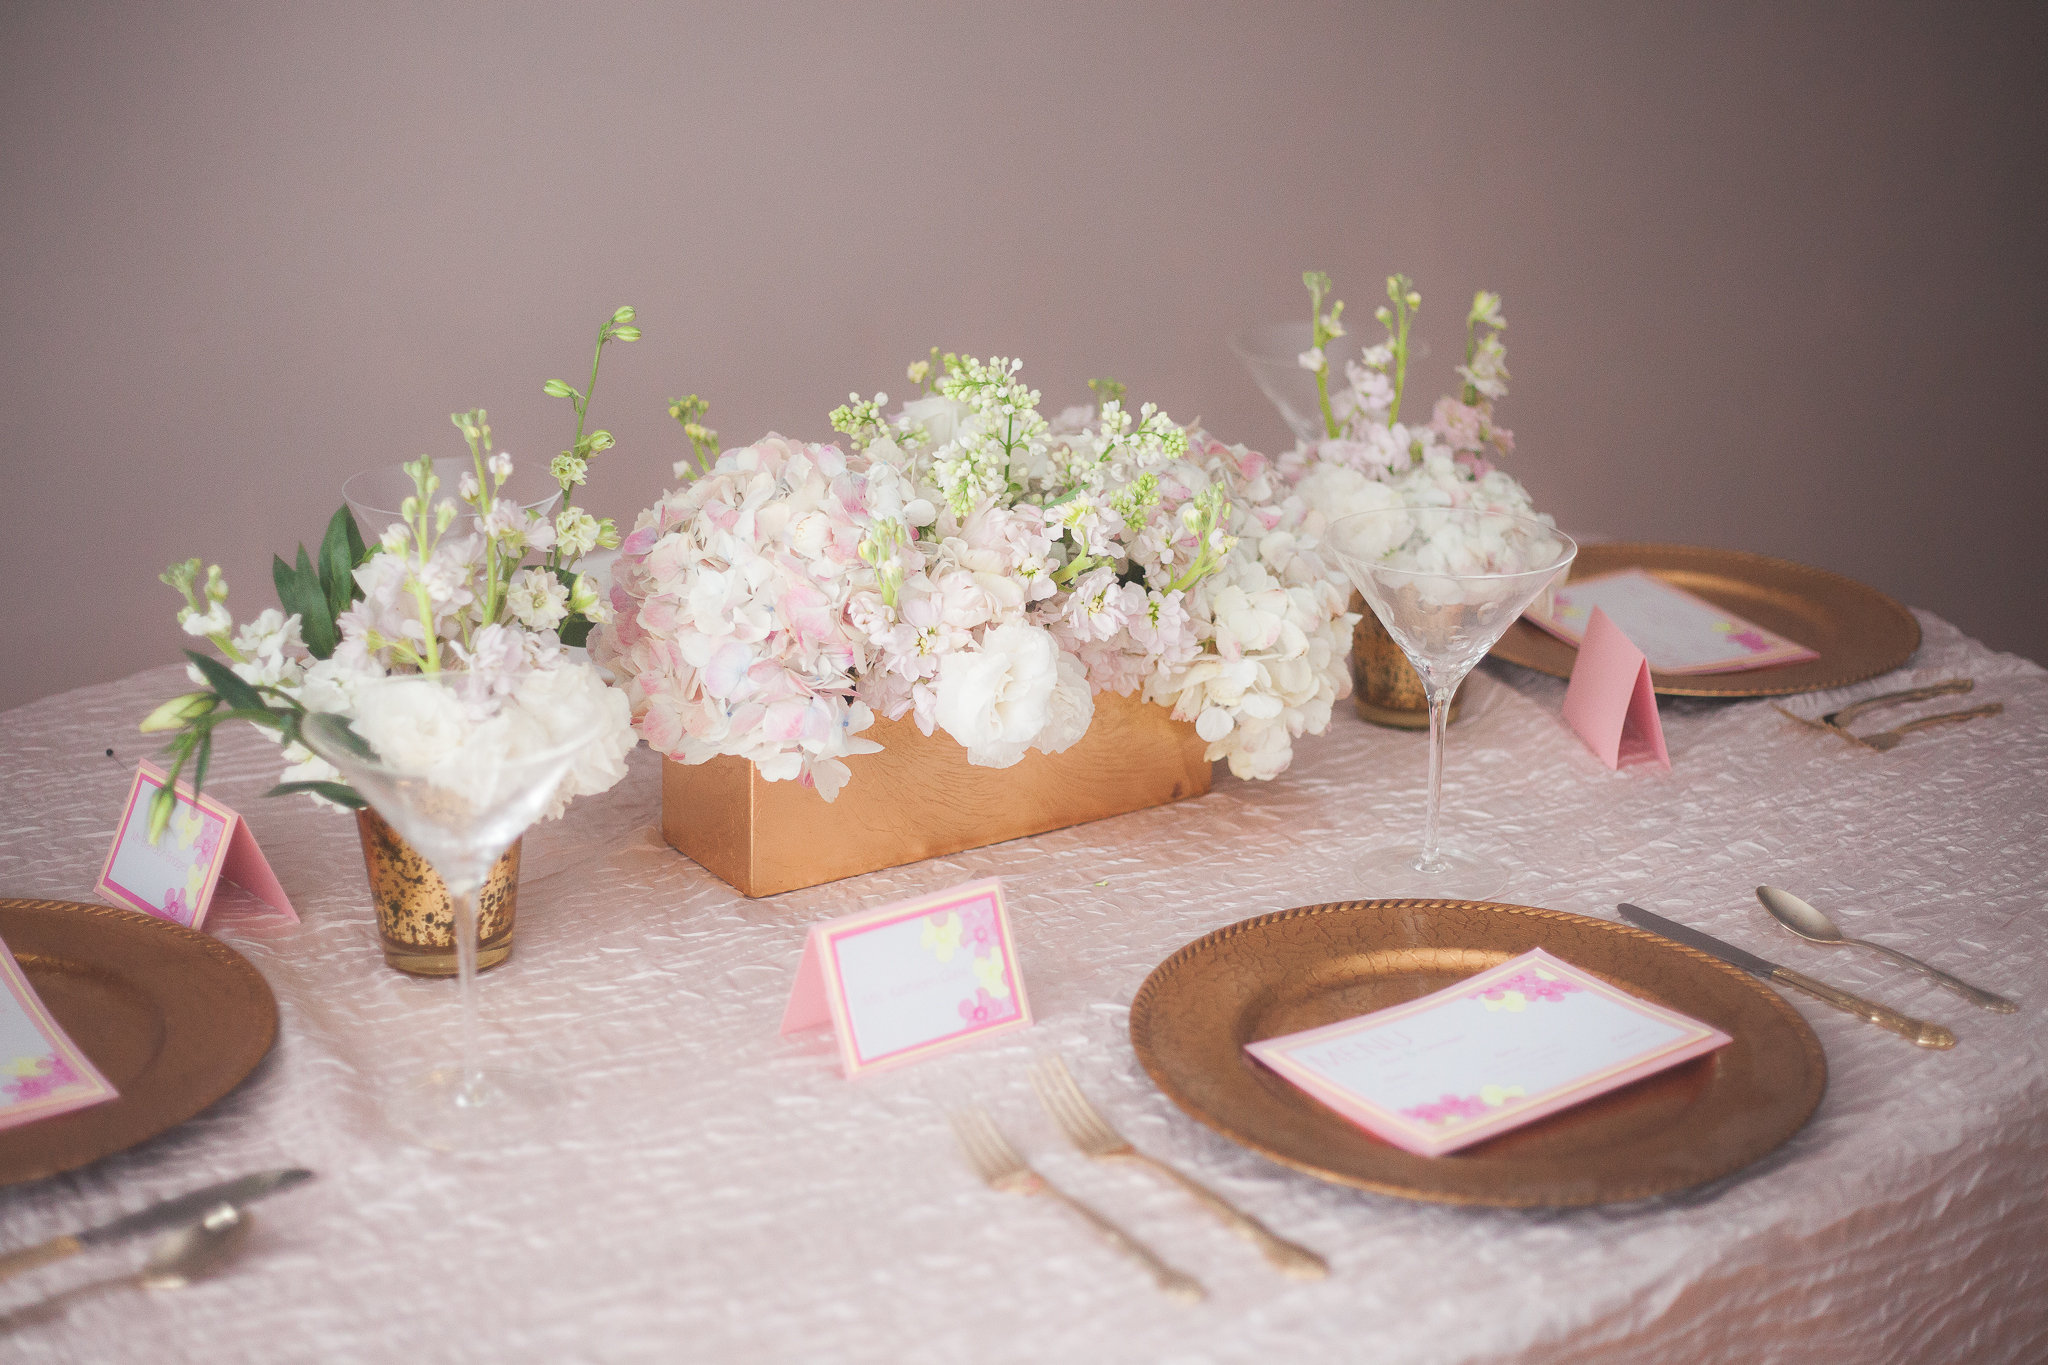 View More: http://meganchasephotography.pass.us/pretty-pear-bride